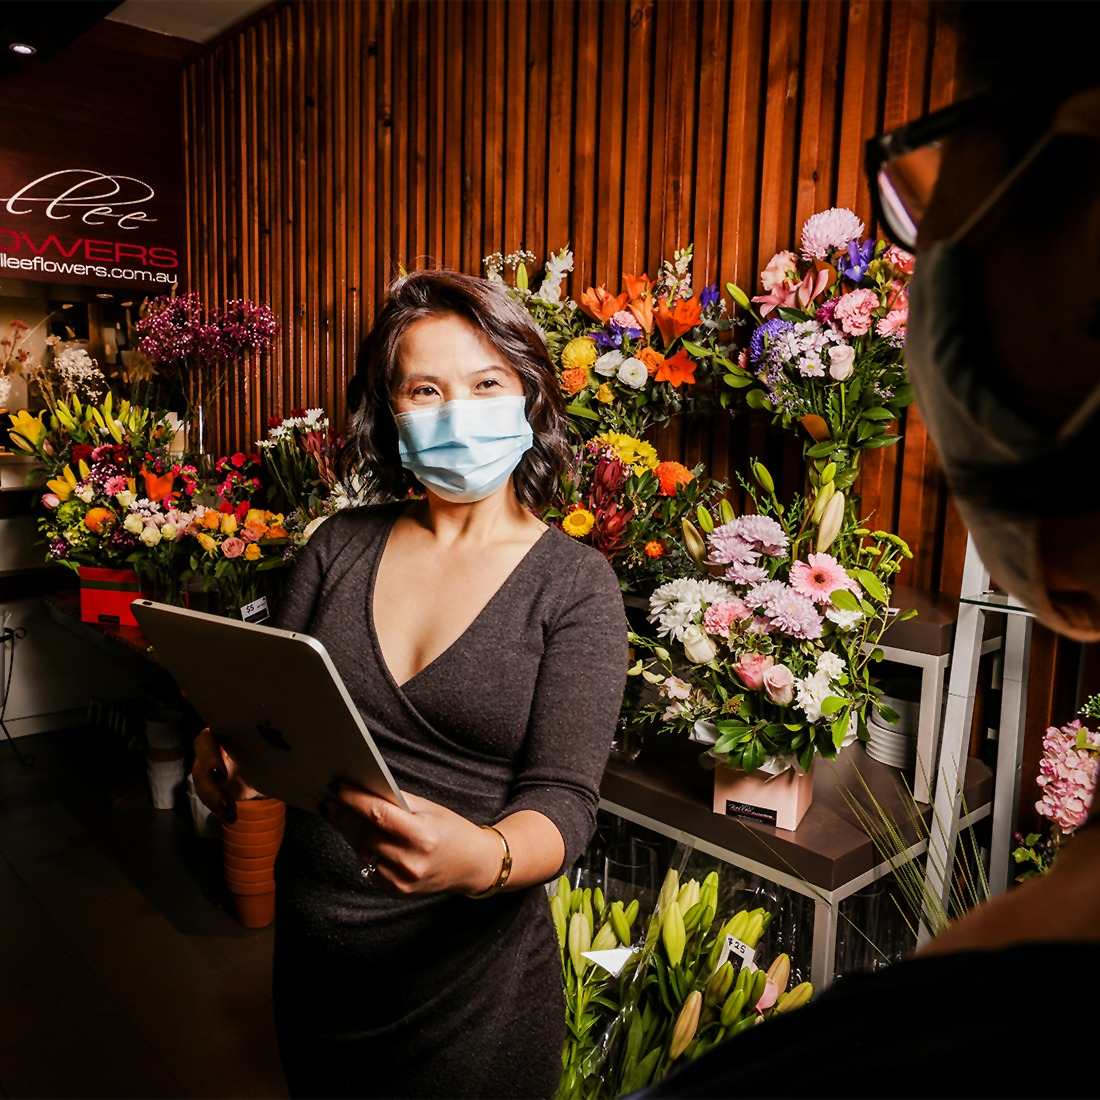 Kellee from Kellee flowers in her flower shop using her tablet, wearing a mask and talking to a customer